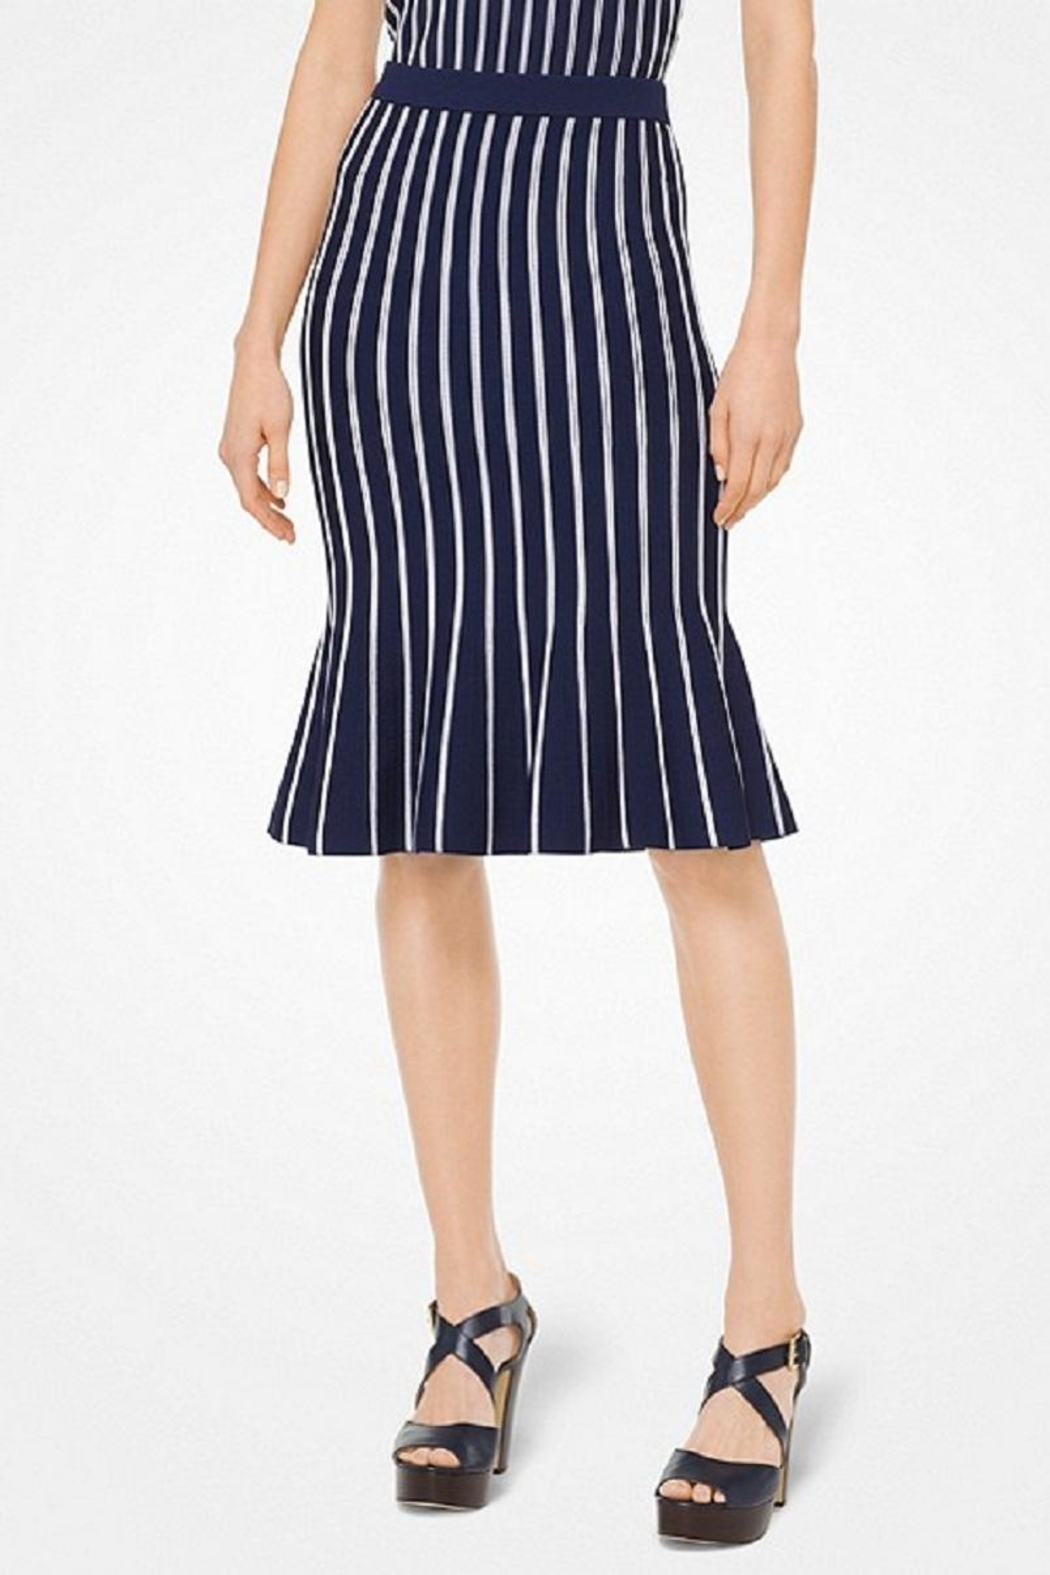 Michael Kors Striped-Stretch Trumpet Skirt - Main Image